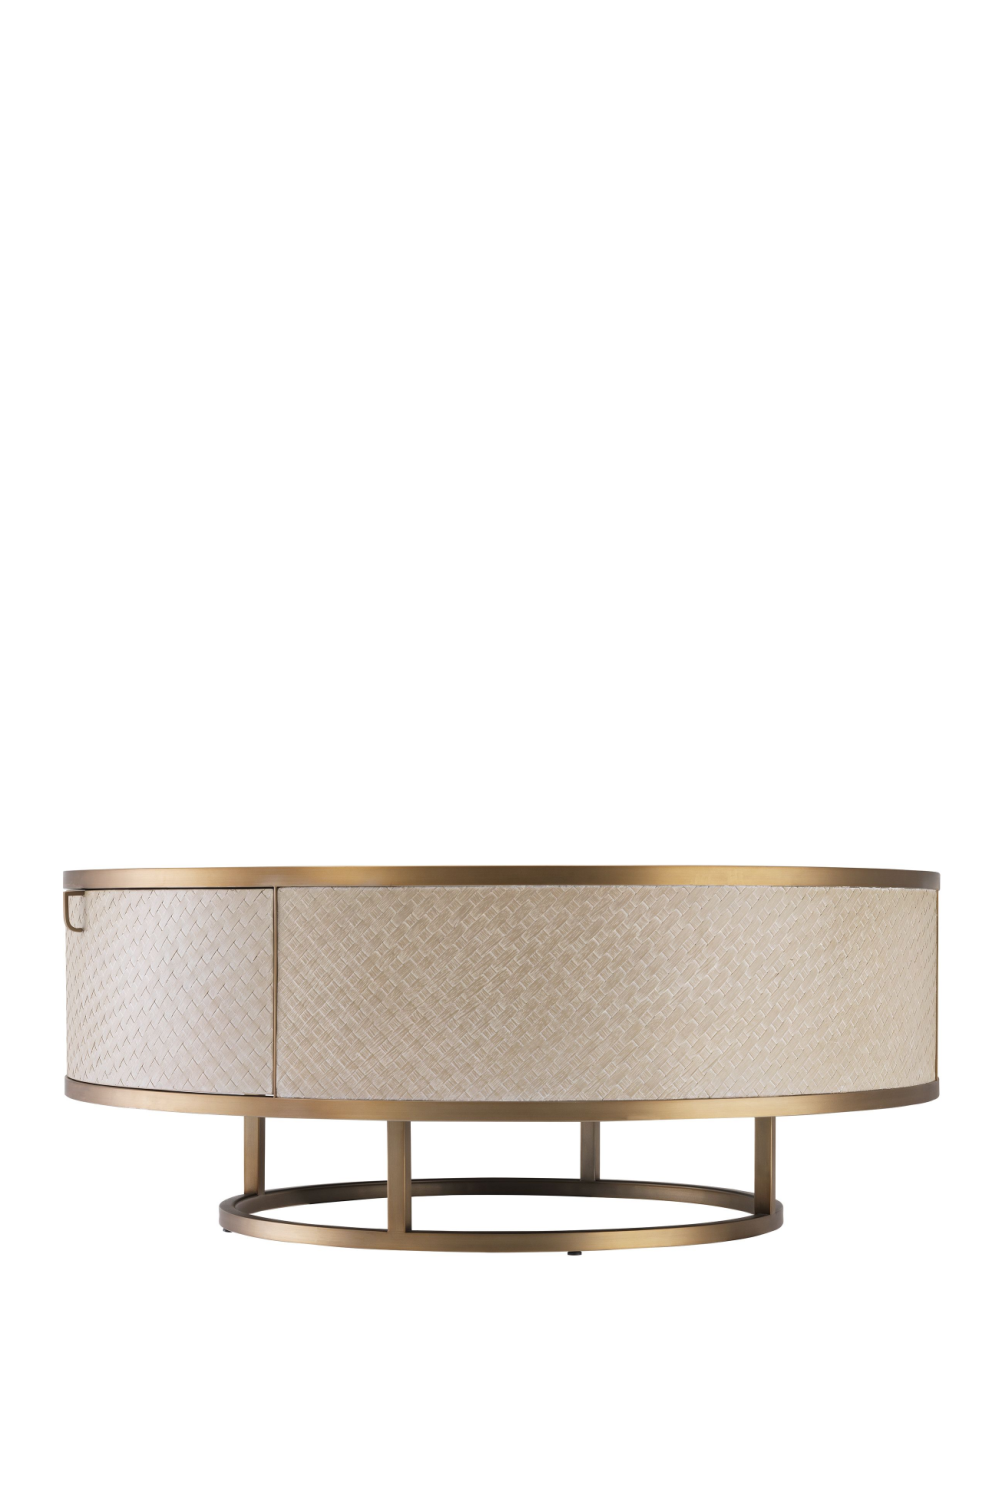 Brass Oak Round Coffee Table | Eichholtz  | #1 Eichholtz Retailer